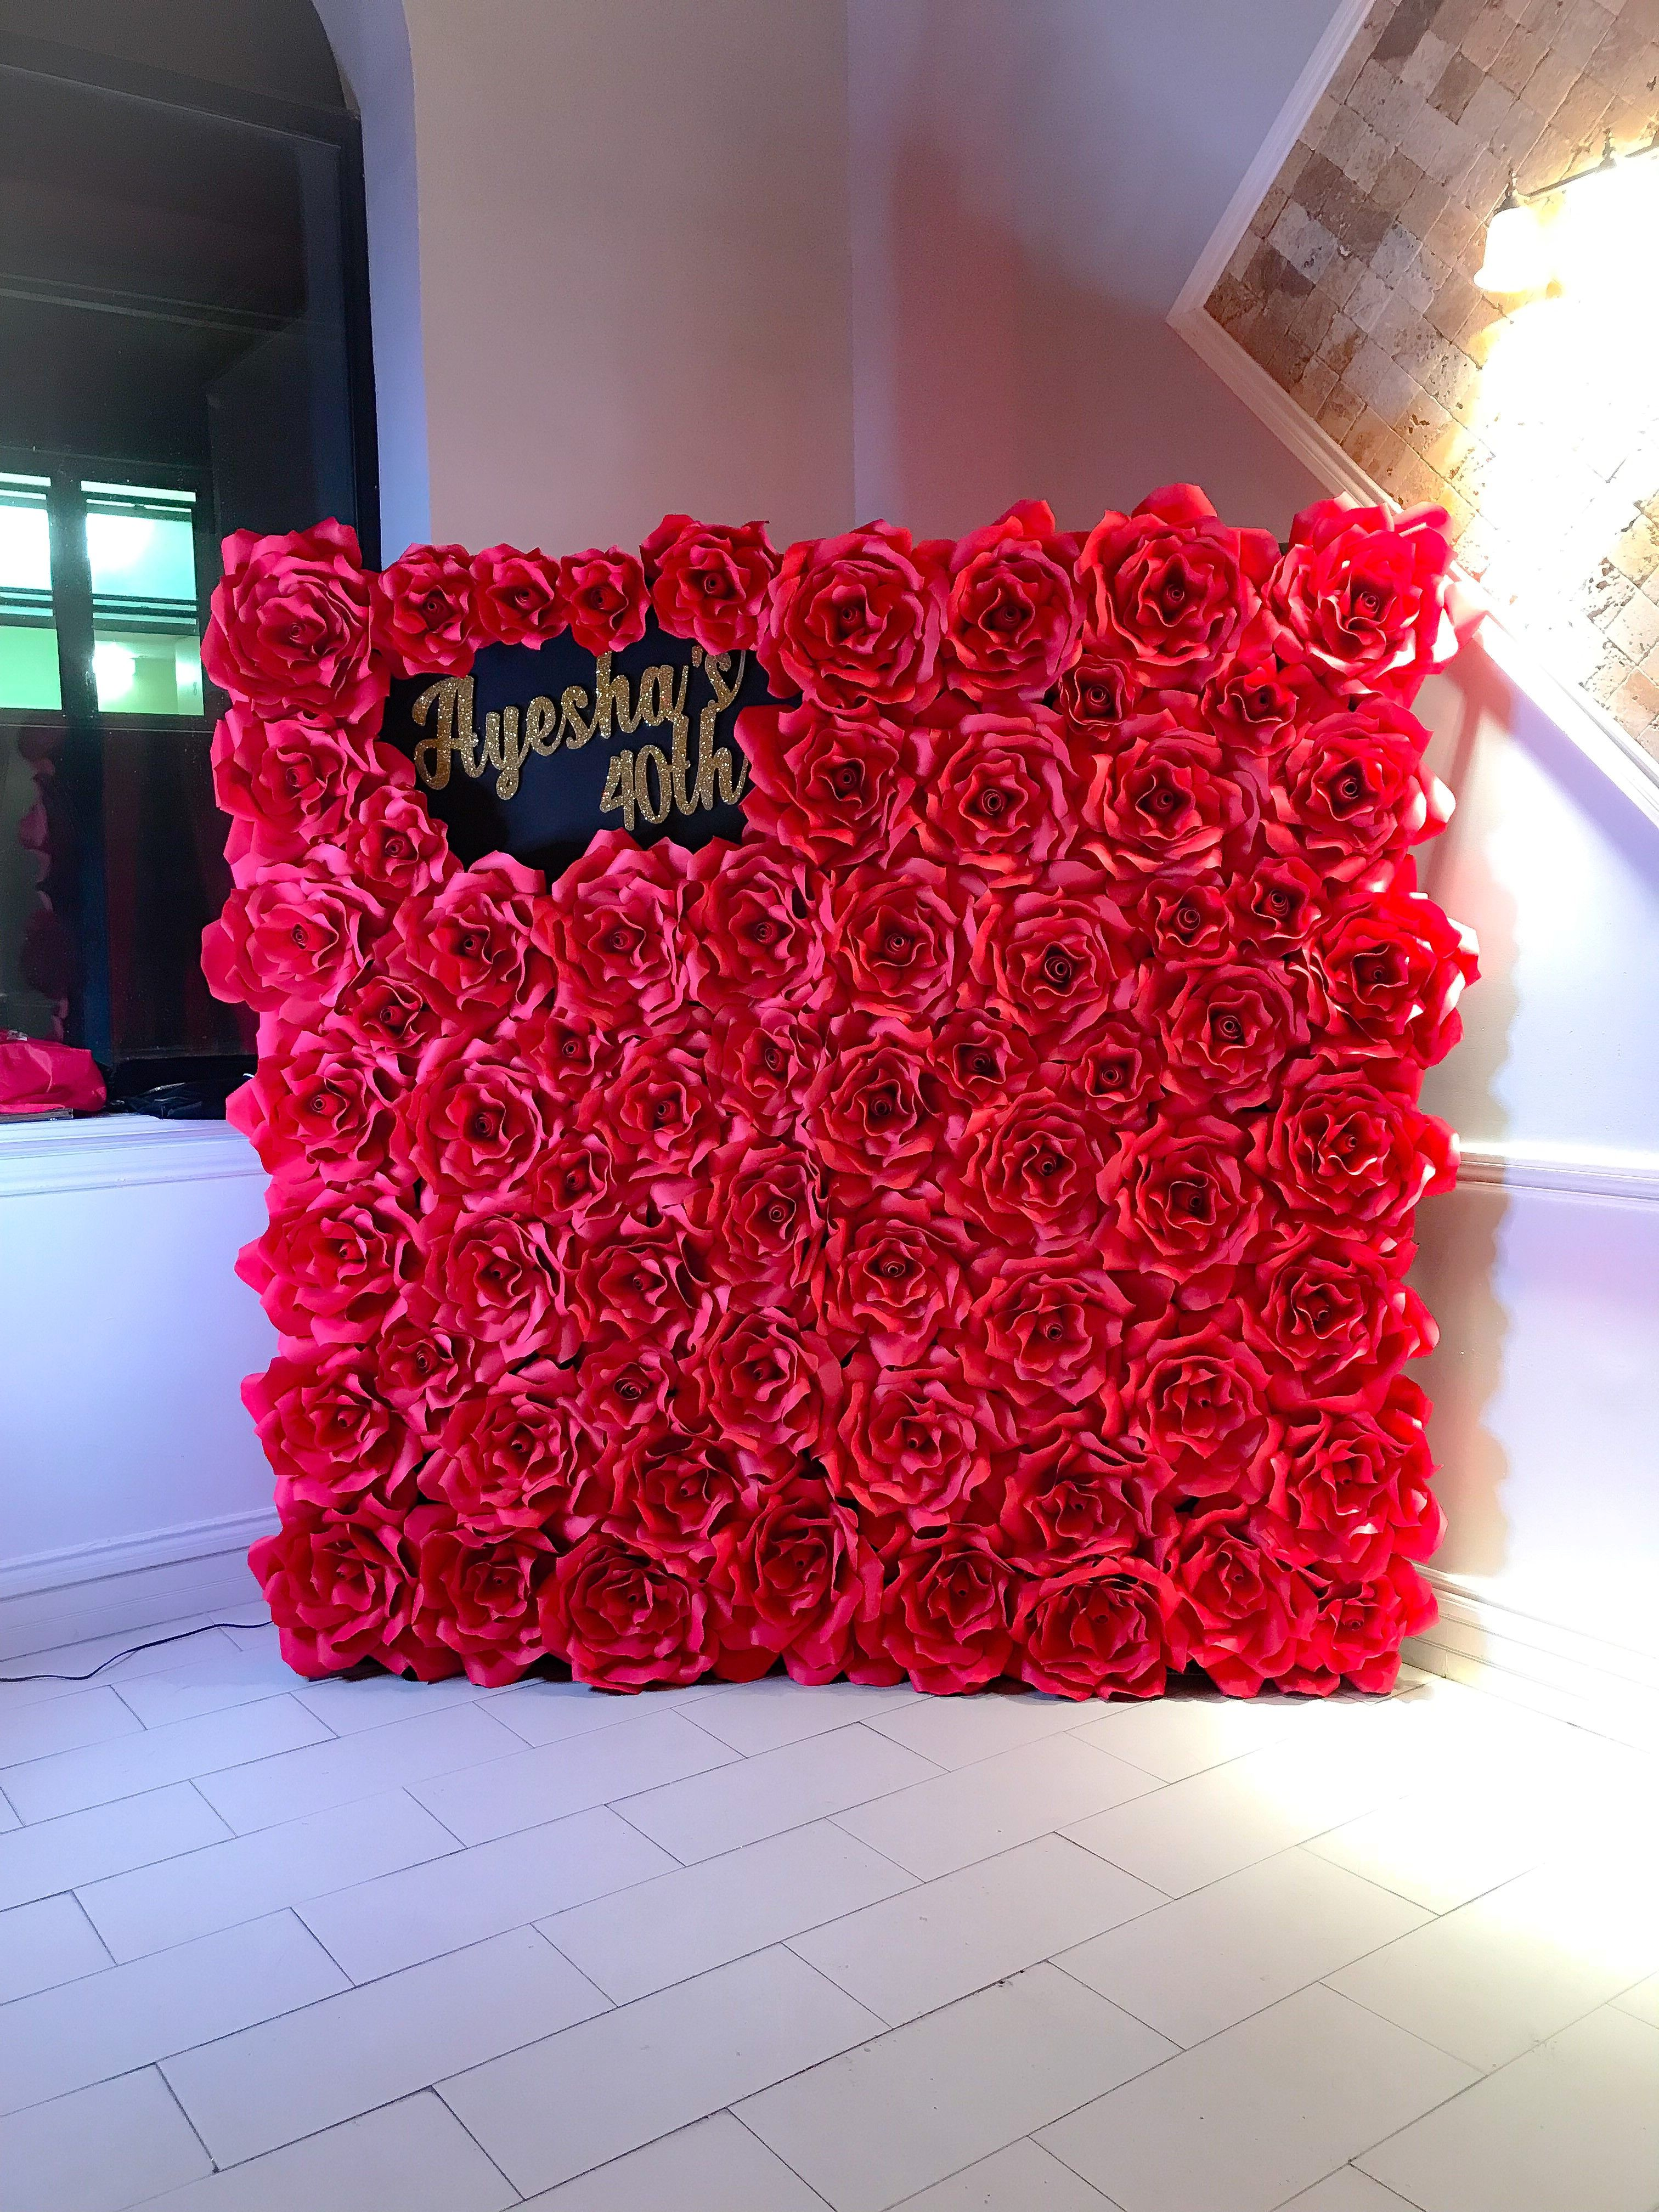 Red Rose Flower Wall Backdrop Paperflowerwall Backdrop Paperflower Flowerwall Red Rose Wedding Flower Wall Backdrop Roses Decoration